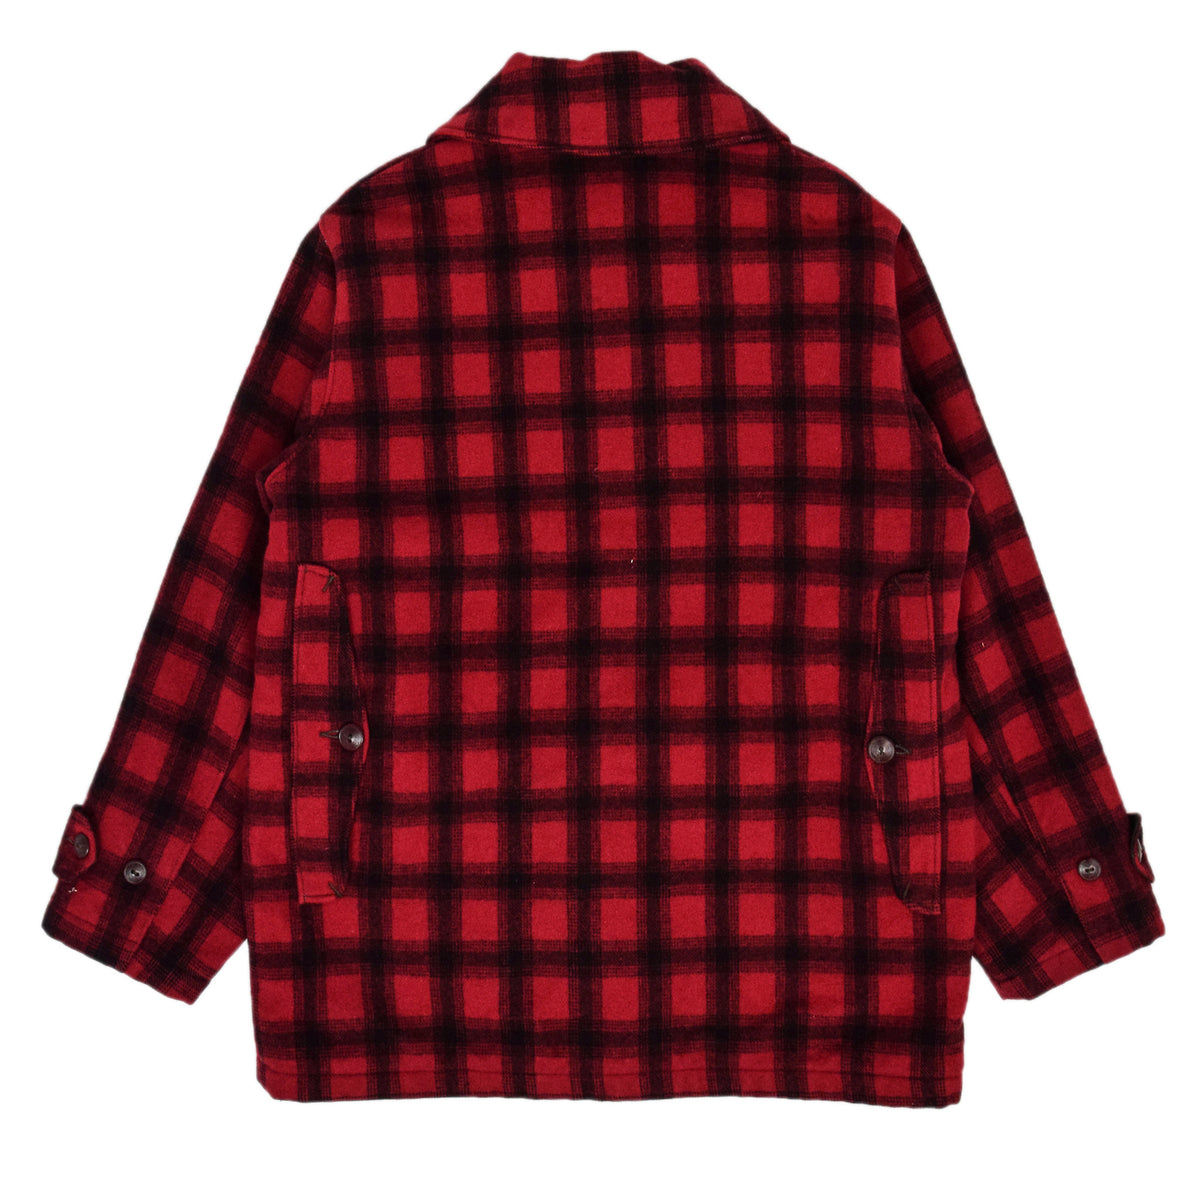 Vintage 70s Woolrich Woolen Mills Buffalo Plaid Mackinaw Hunting Jacket M back